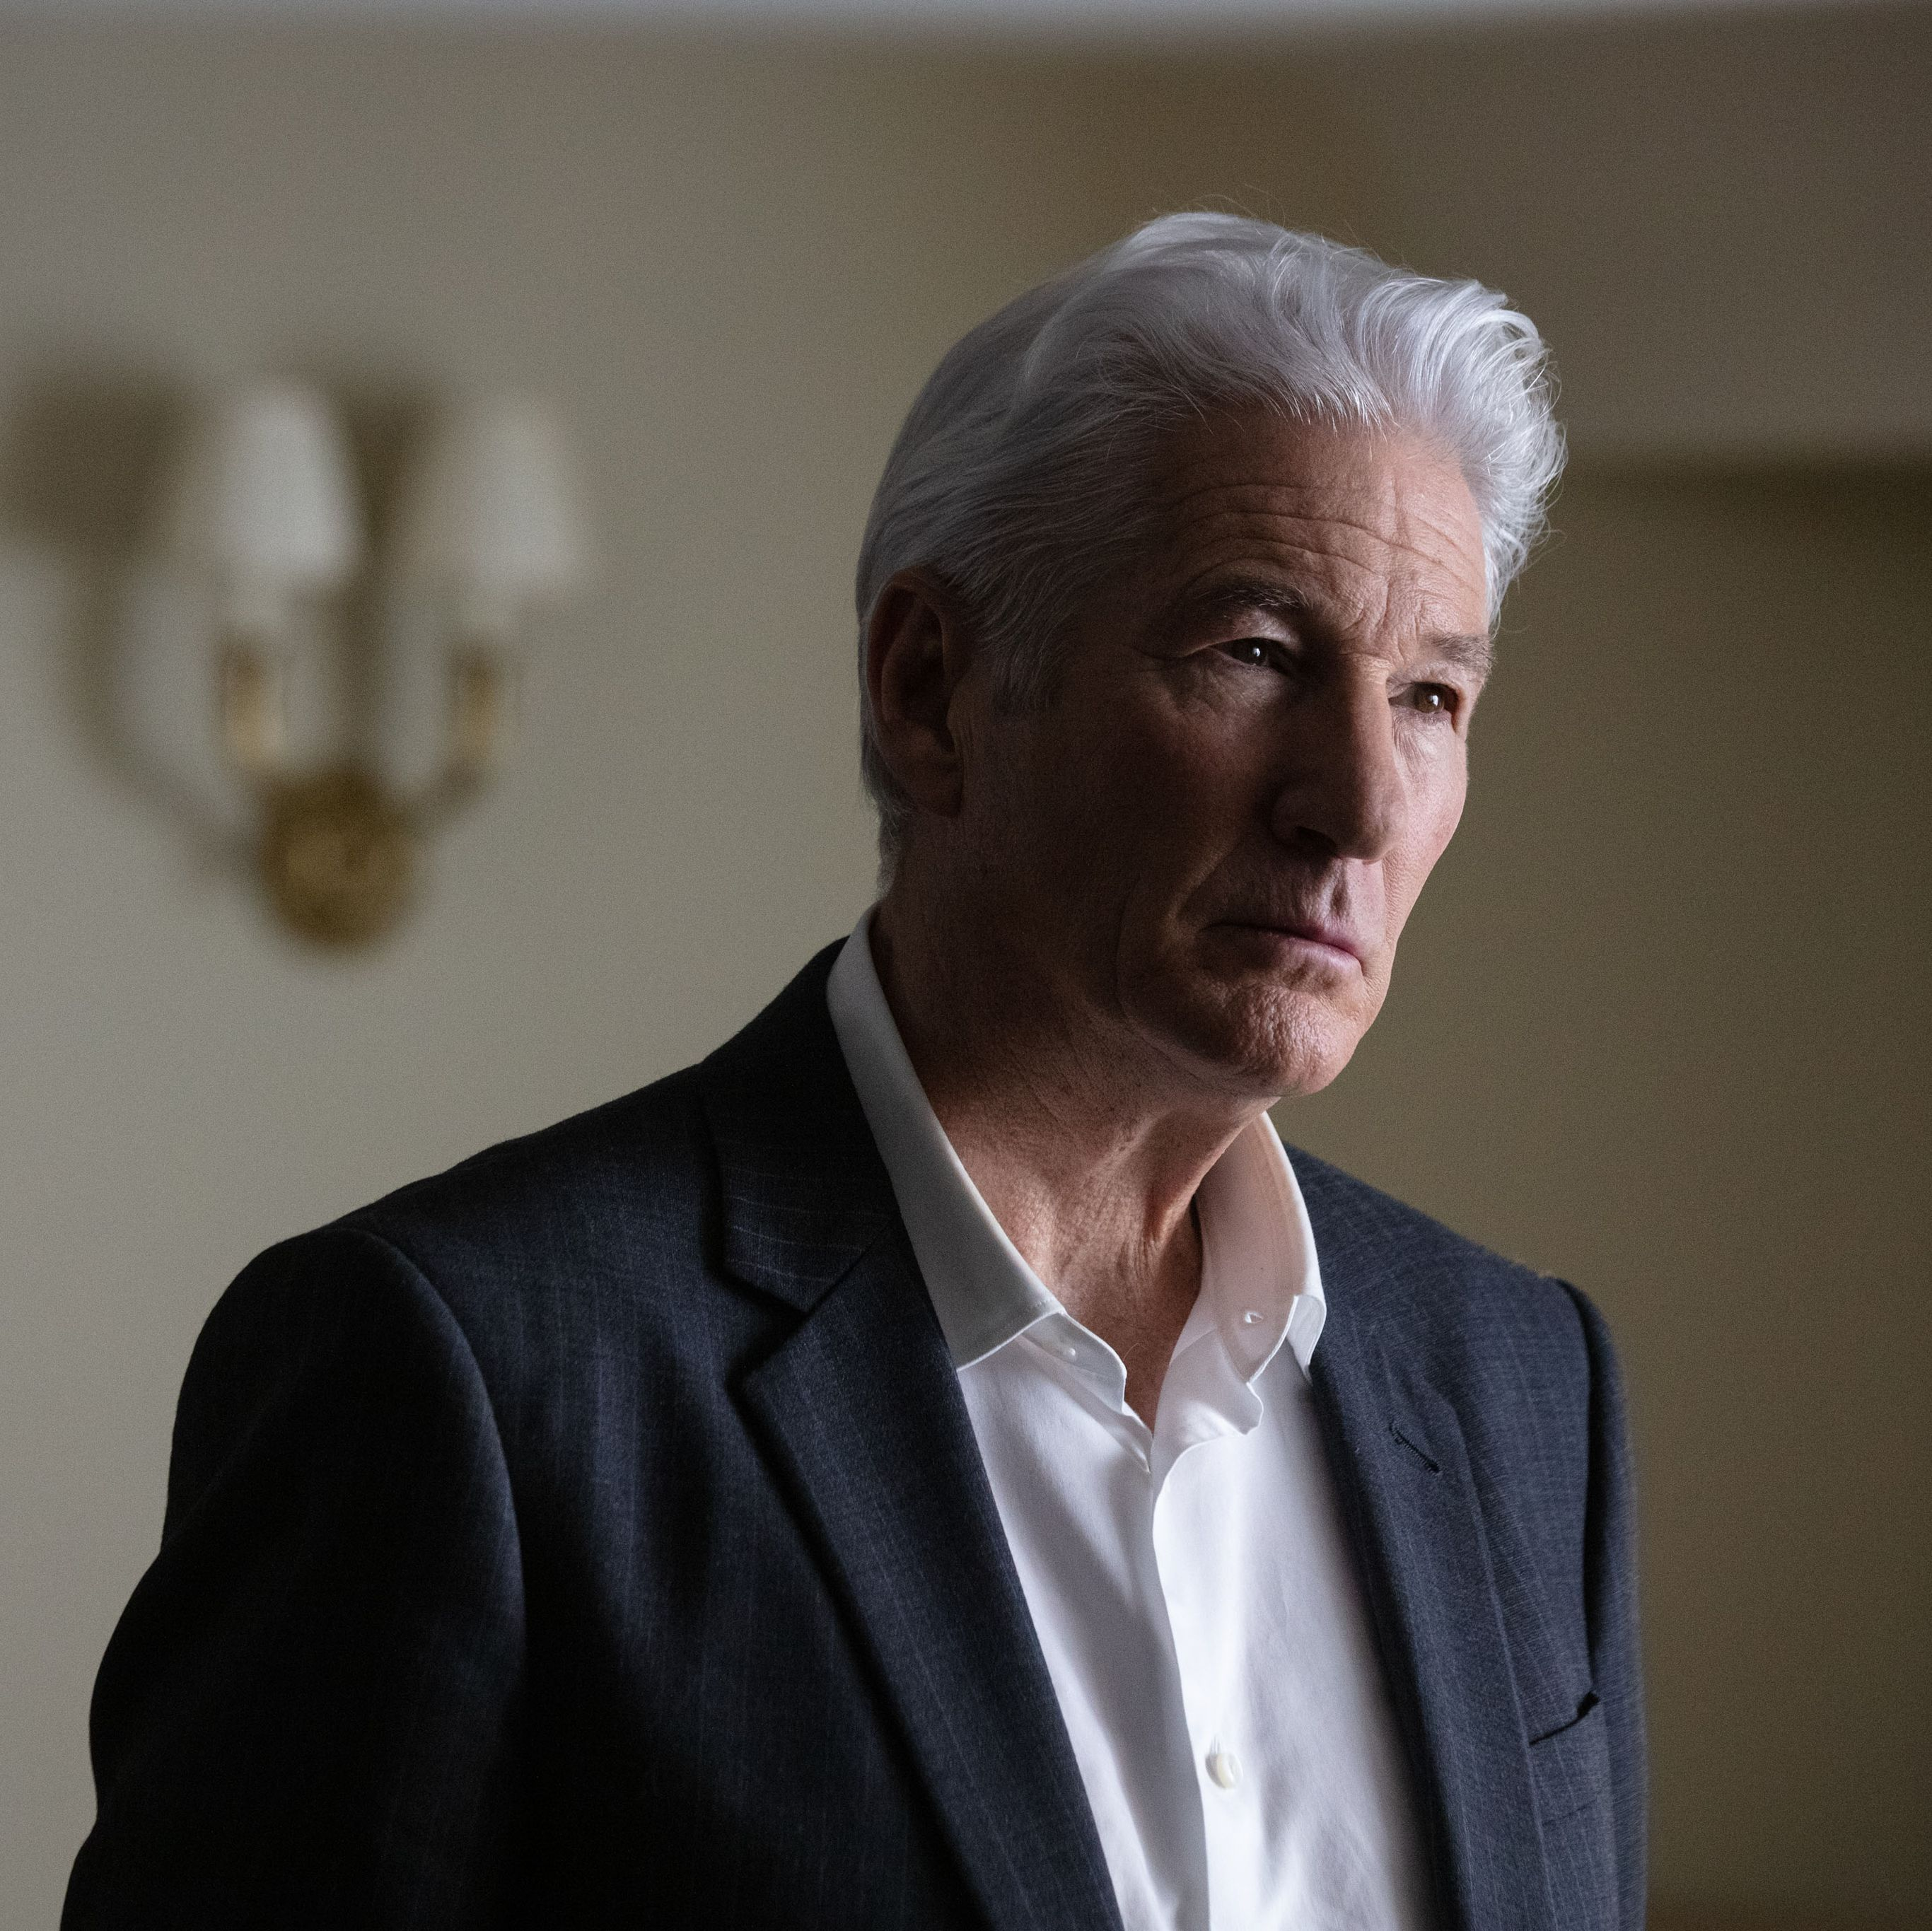 MotherFatherSon viewers still confused by finale, but praise performances